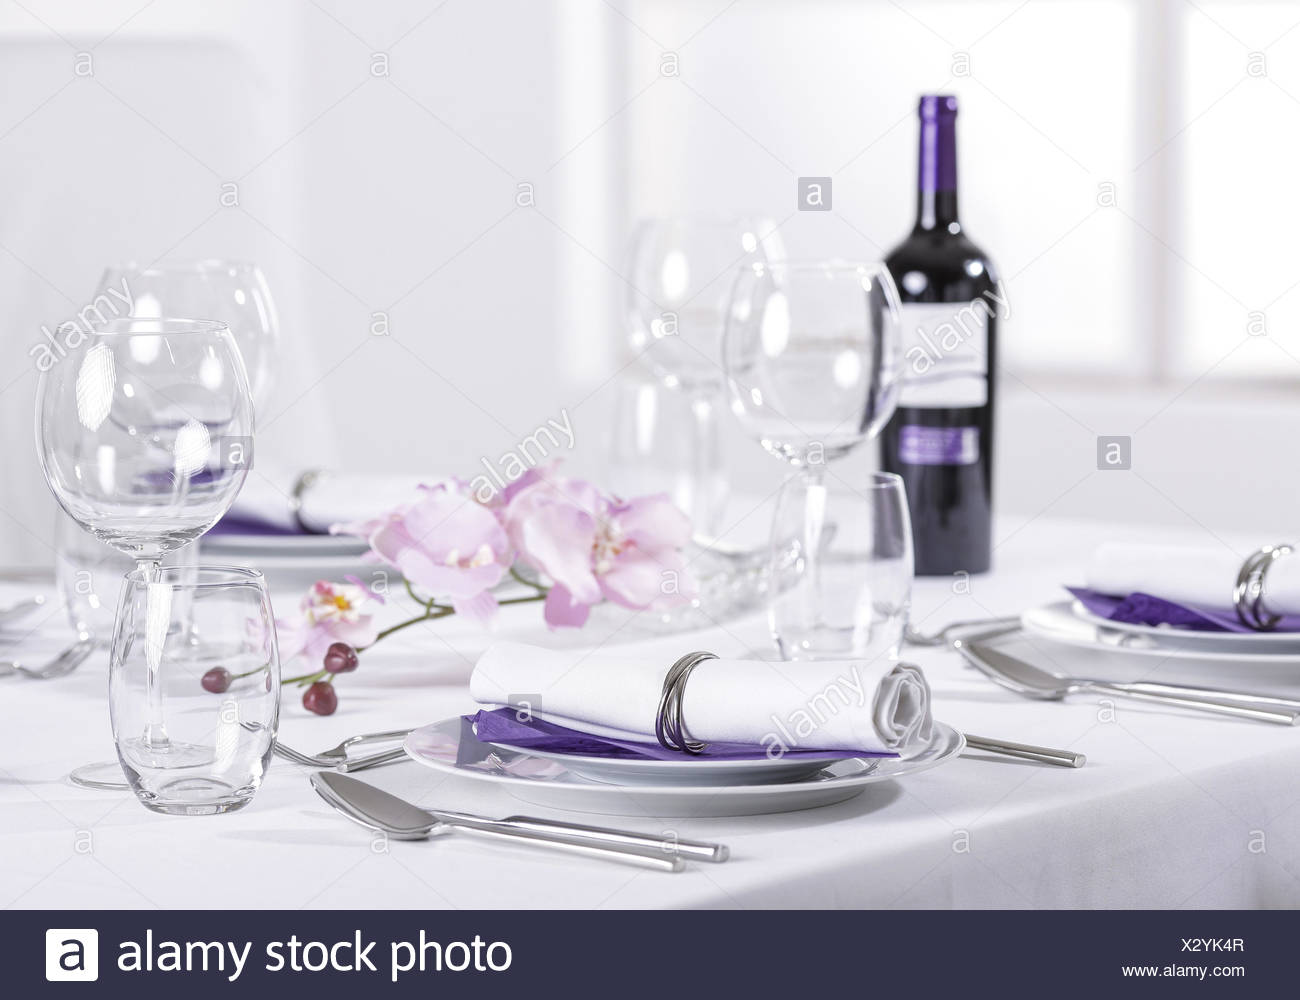 Festlich gedeckte Tafel Stock Photo